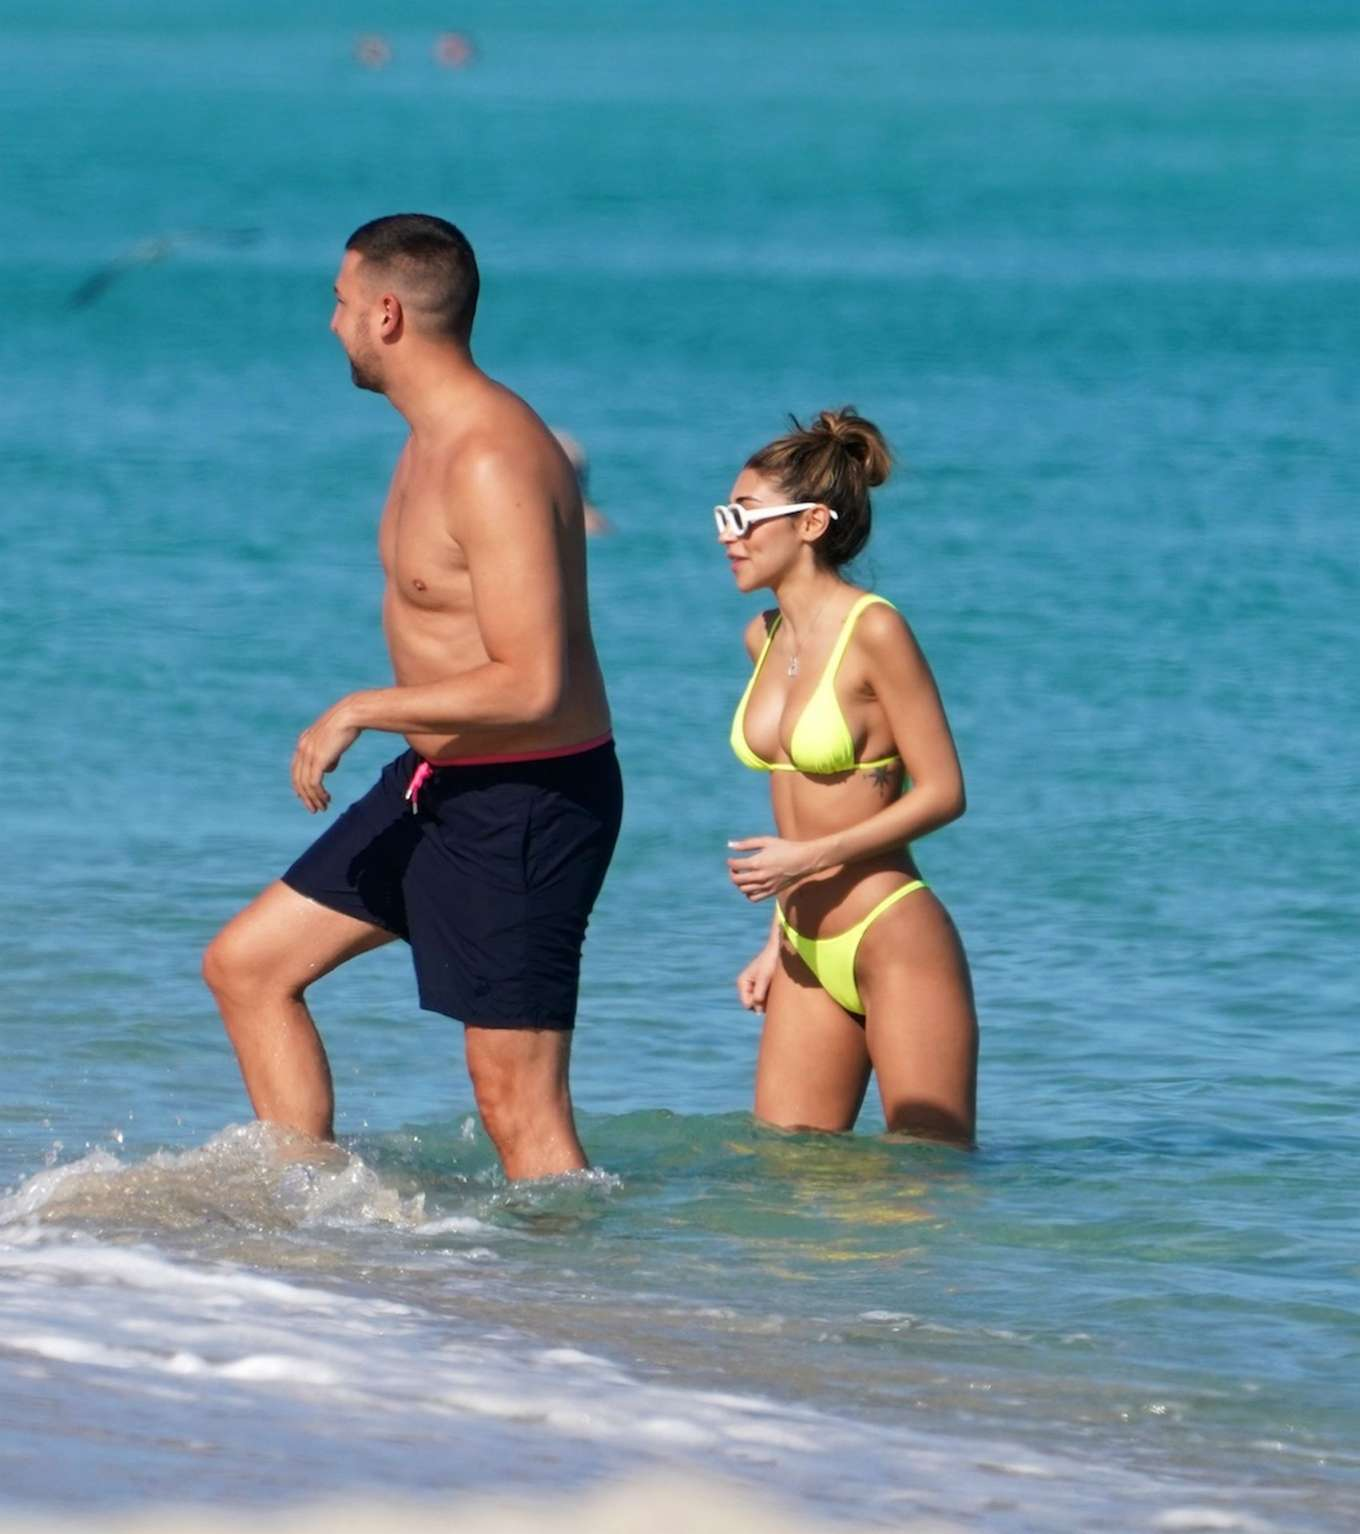 Chantel Jeffries 2019 : Chantel Jeffries in Neon Bikini 2019-03